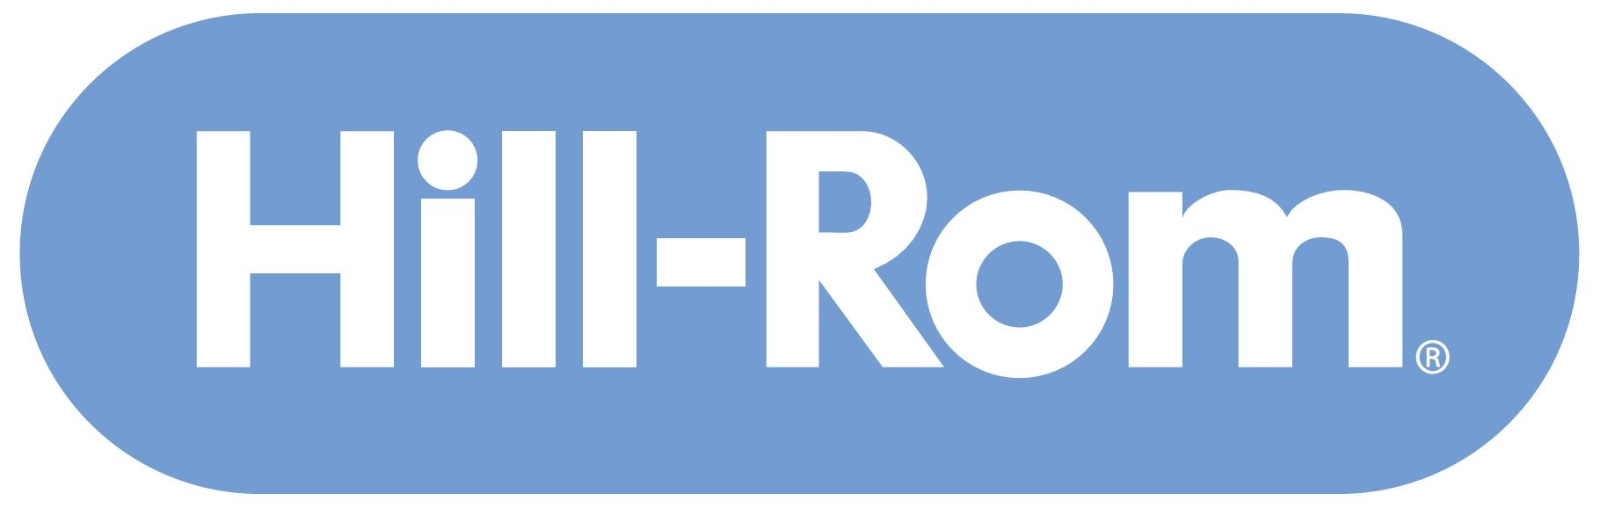 Hill-Rom Services Pte Ltd